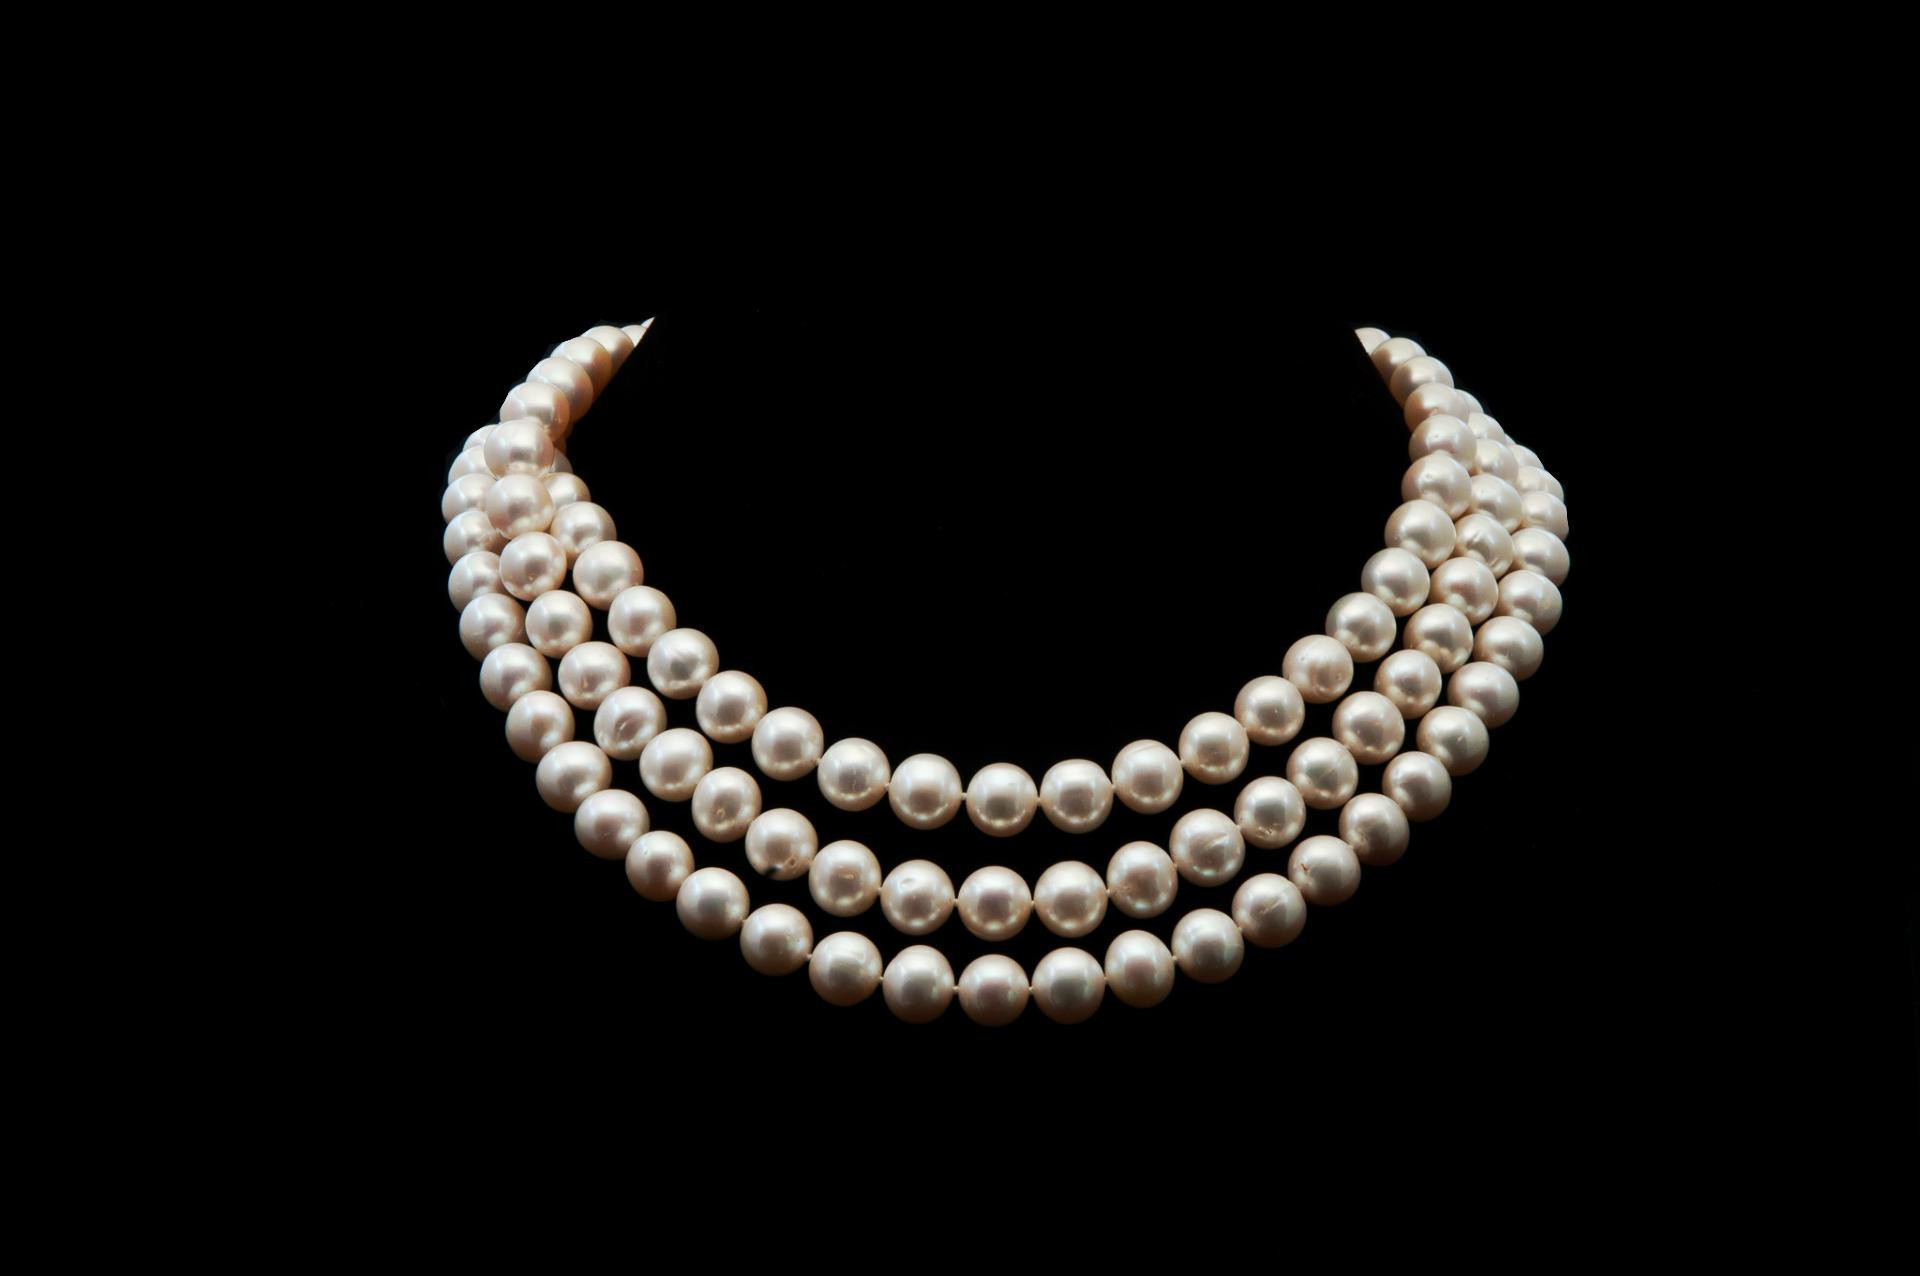 Necklace clipart pearl strand #10